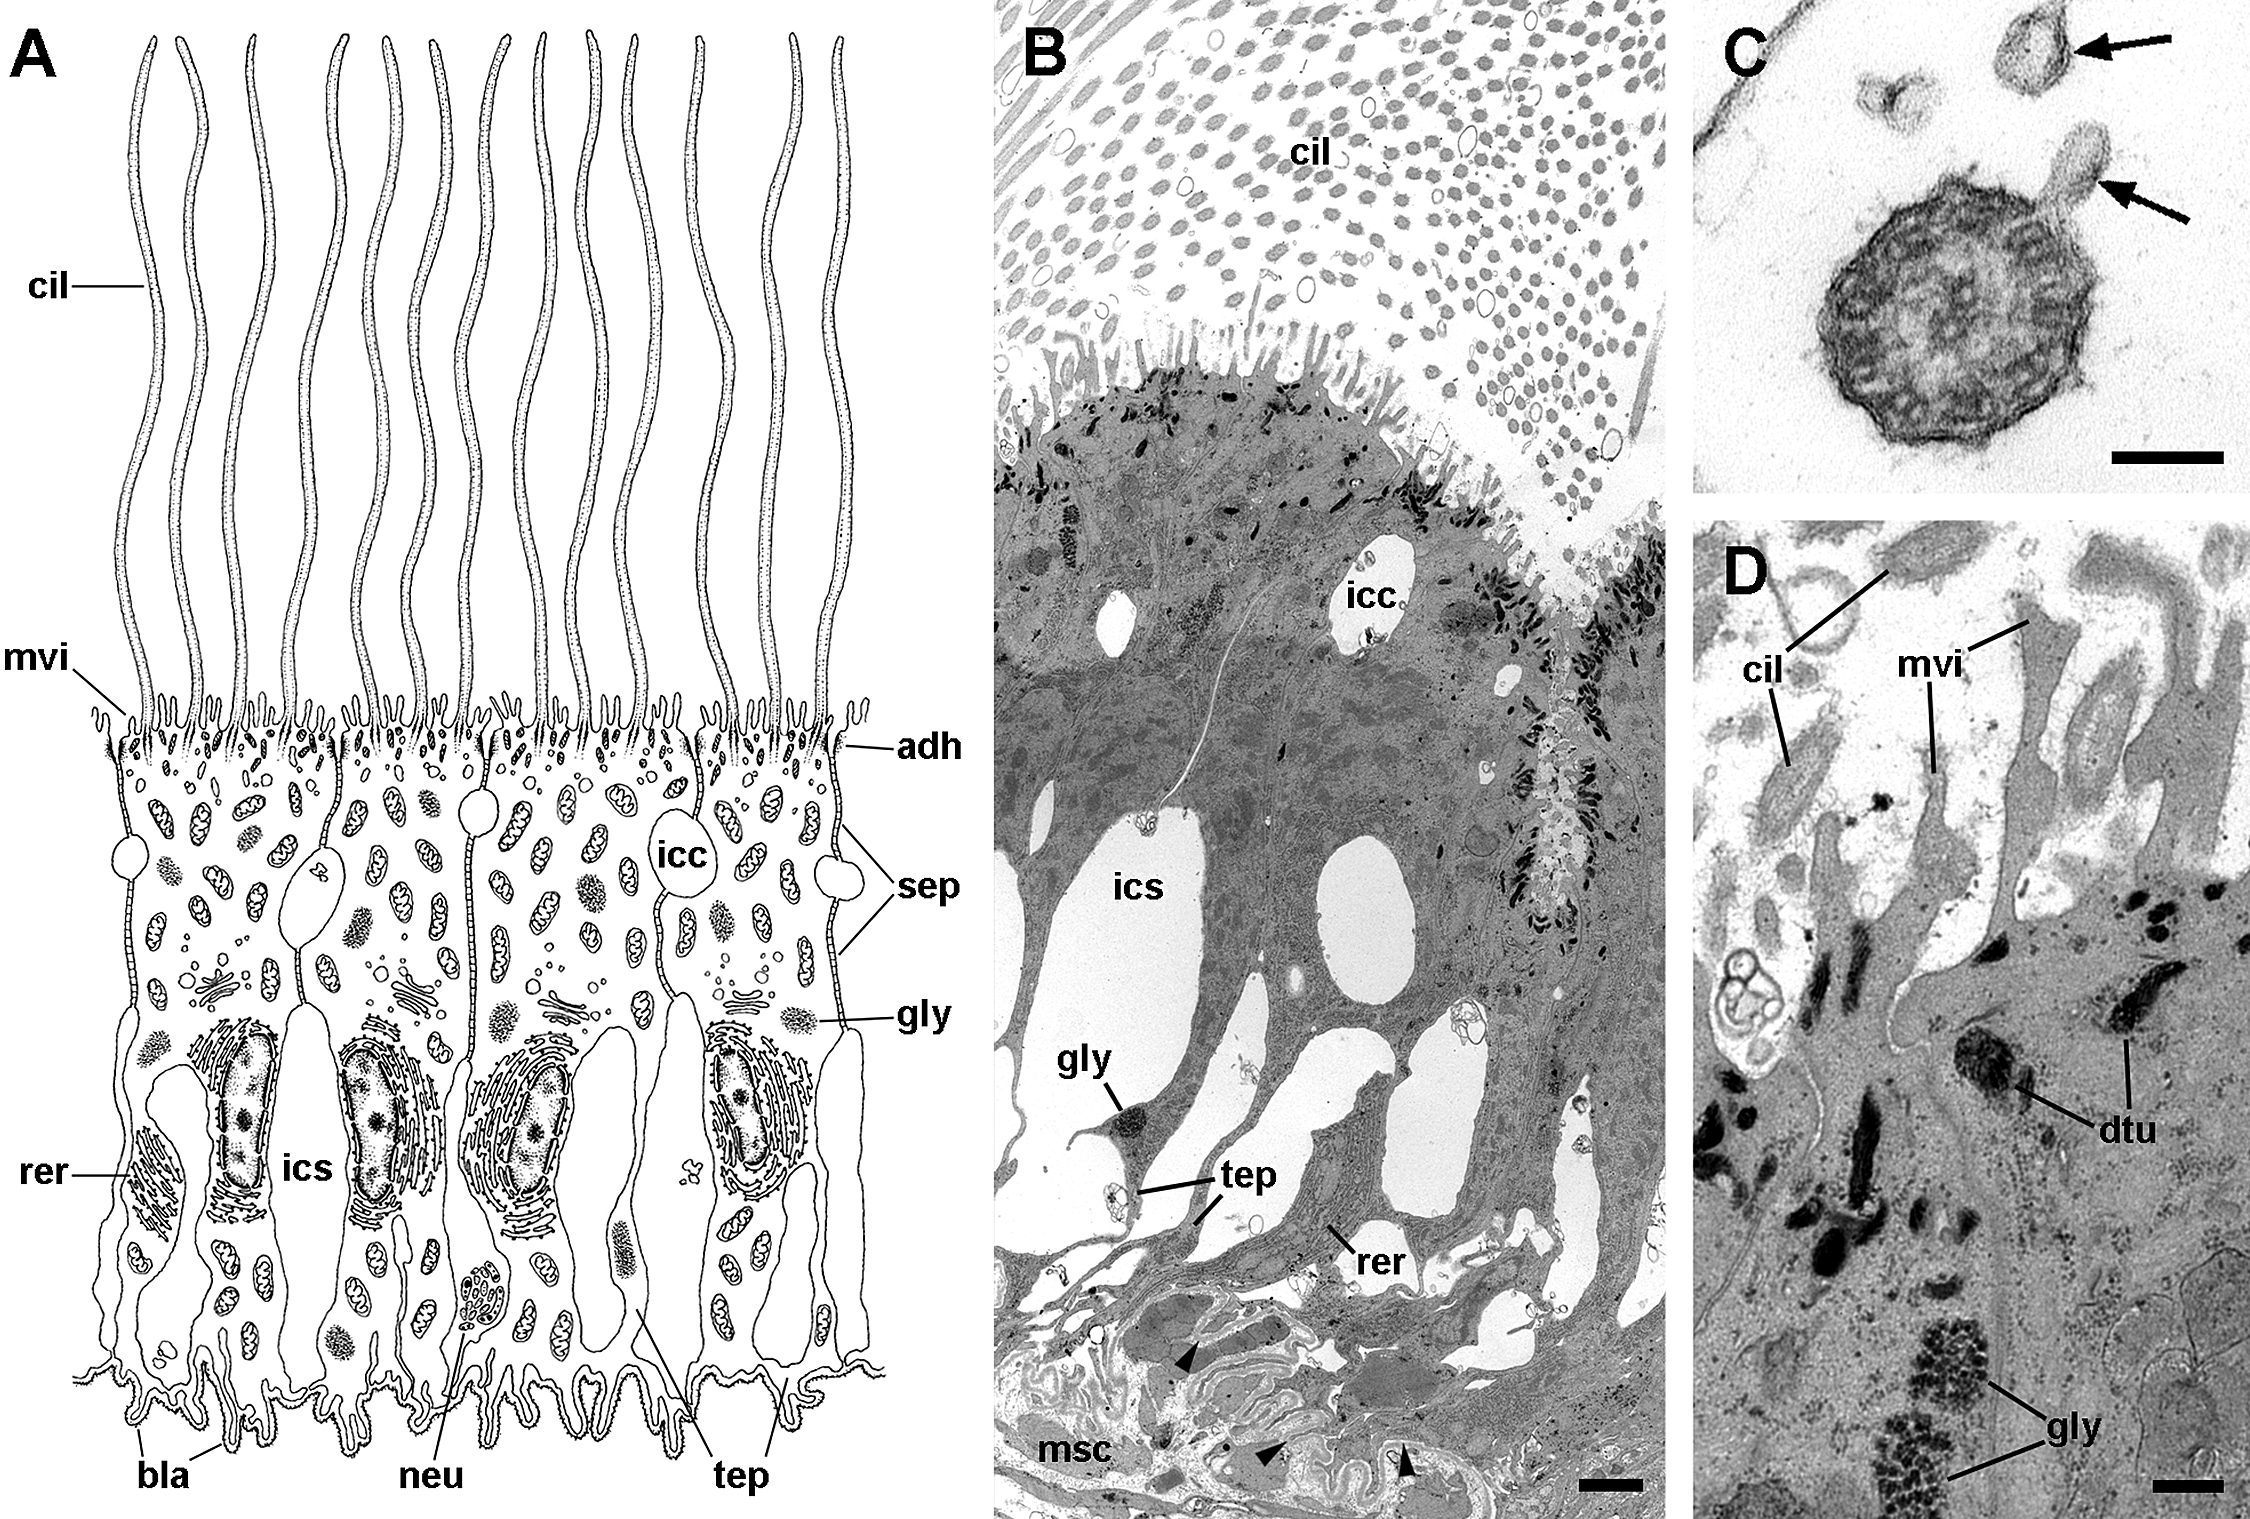 Functional and evolutionary perspectives on gill structures